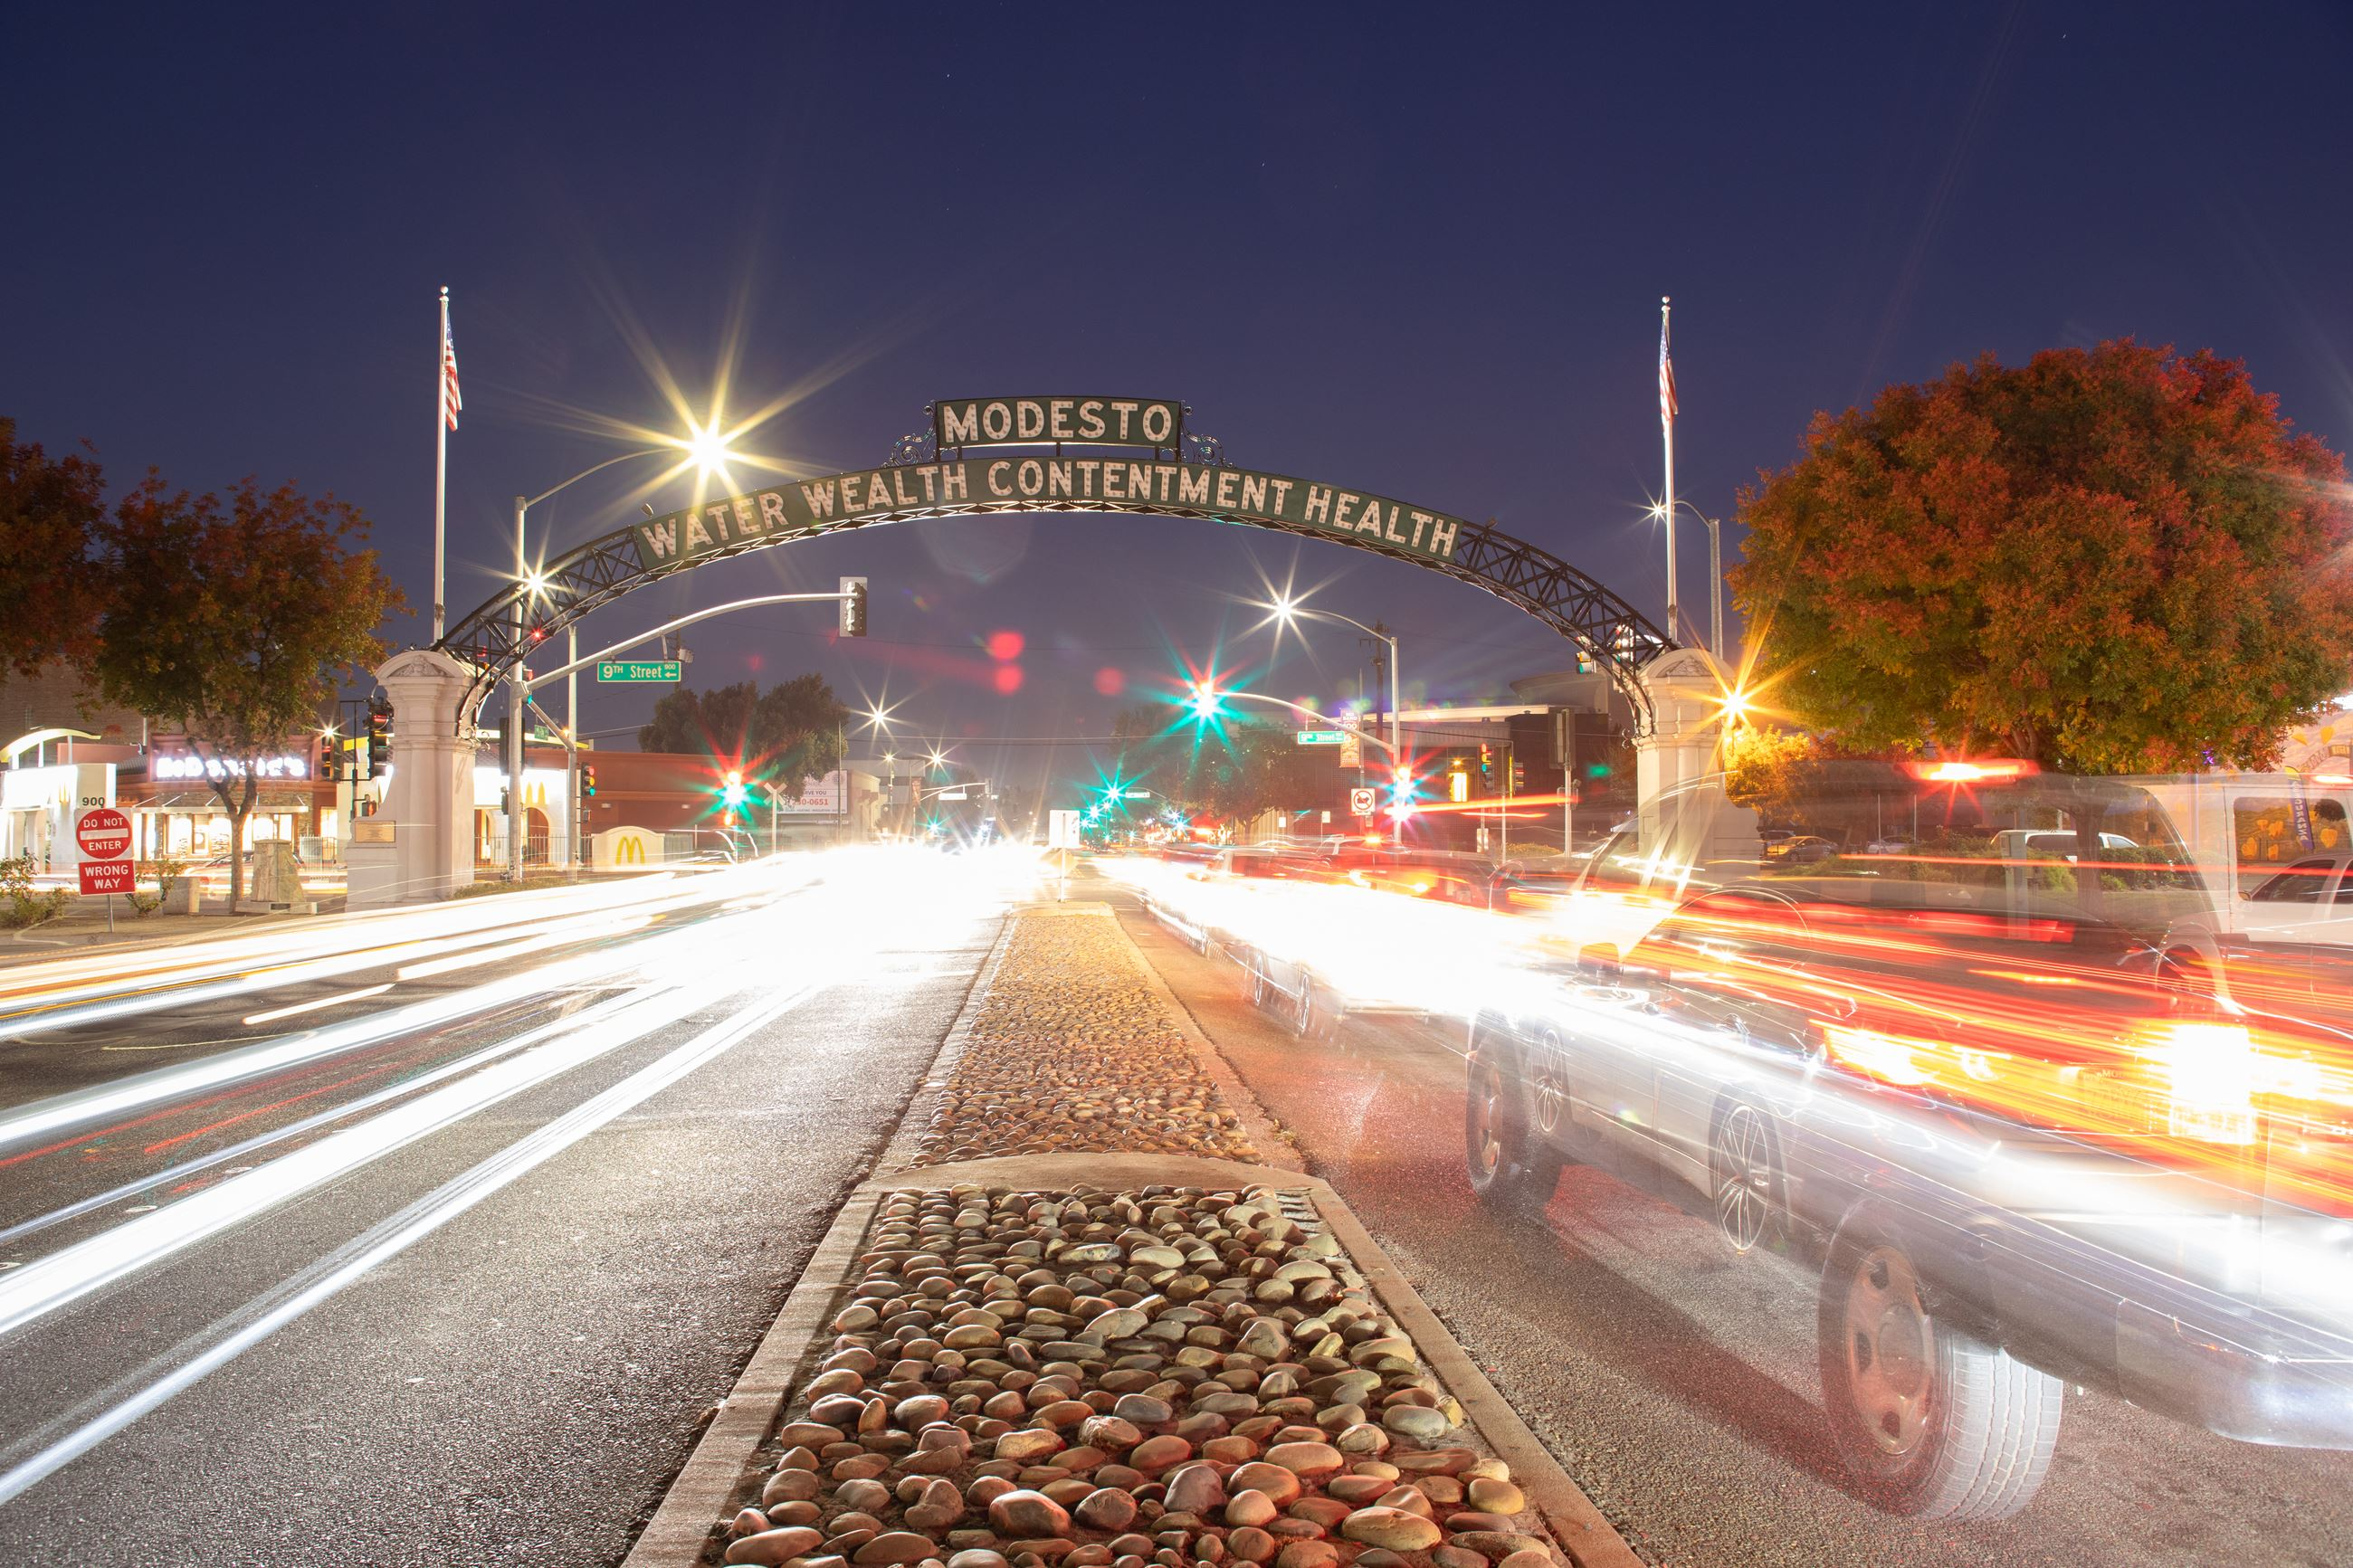 The Modesto arch is centered between two lanes of traffic in the evening.